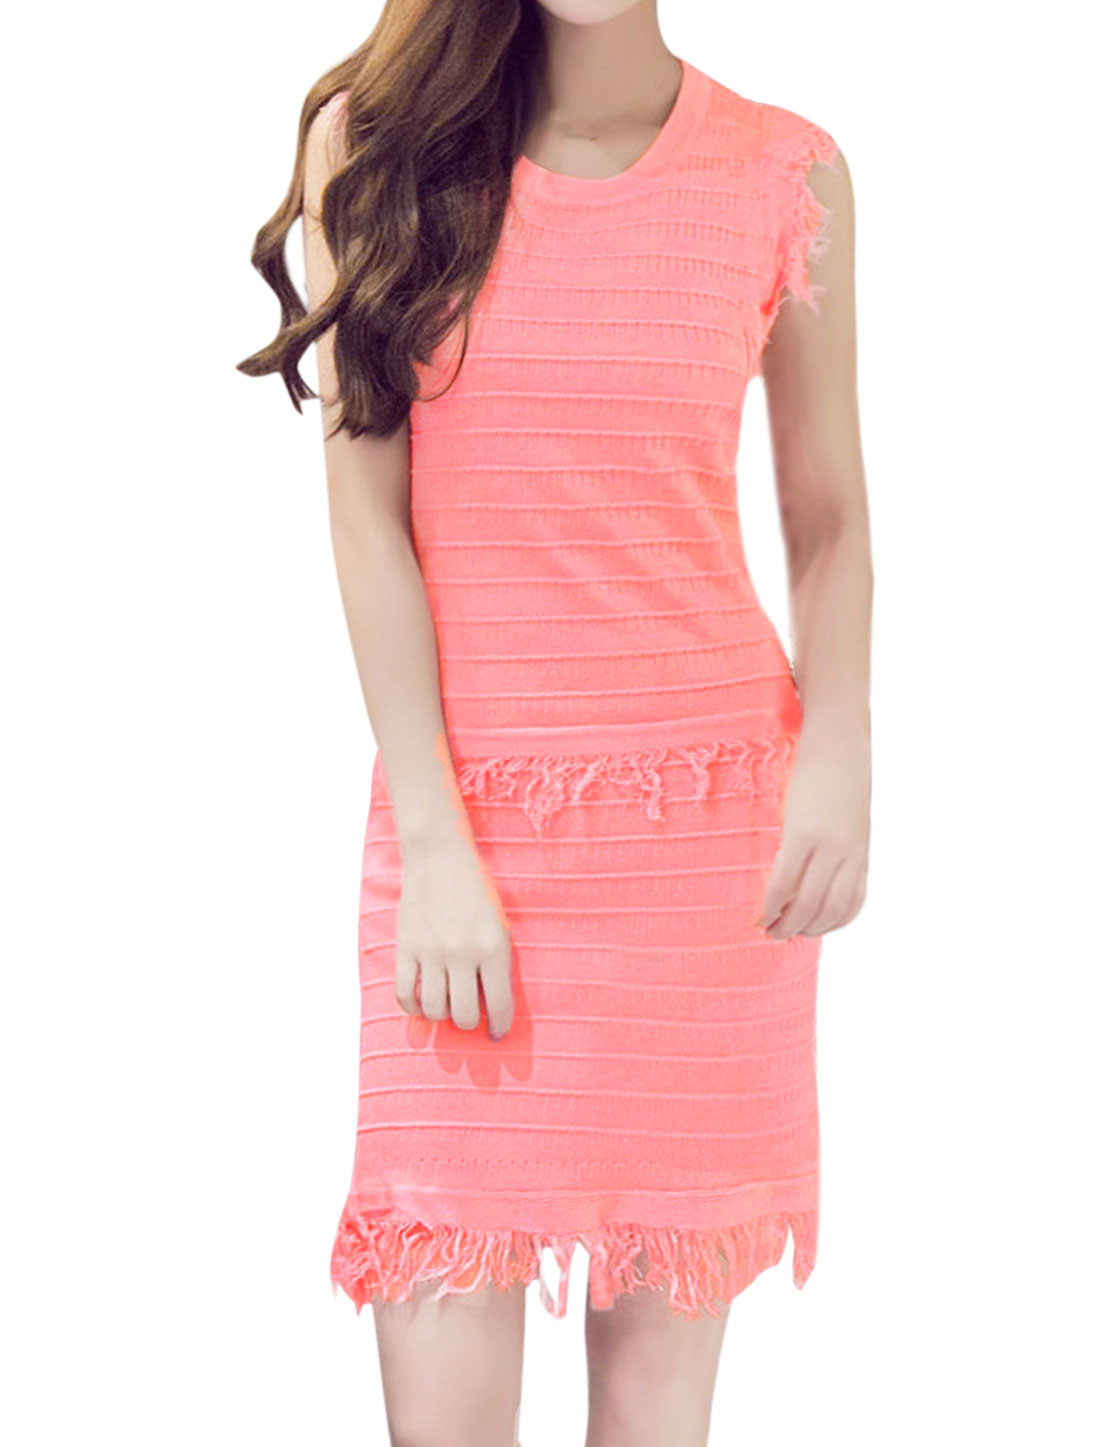 Lady Stripes Design Knitted Fringed Sheath Dress Pink XS